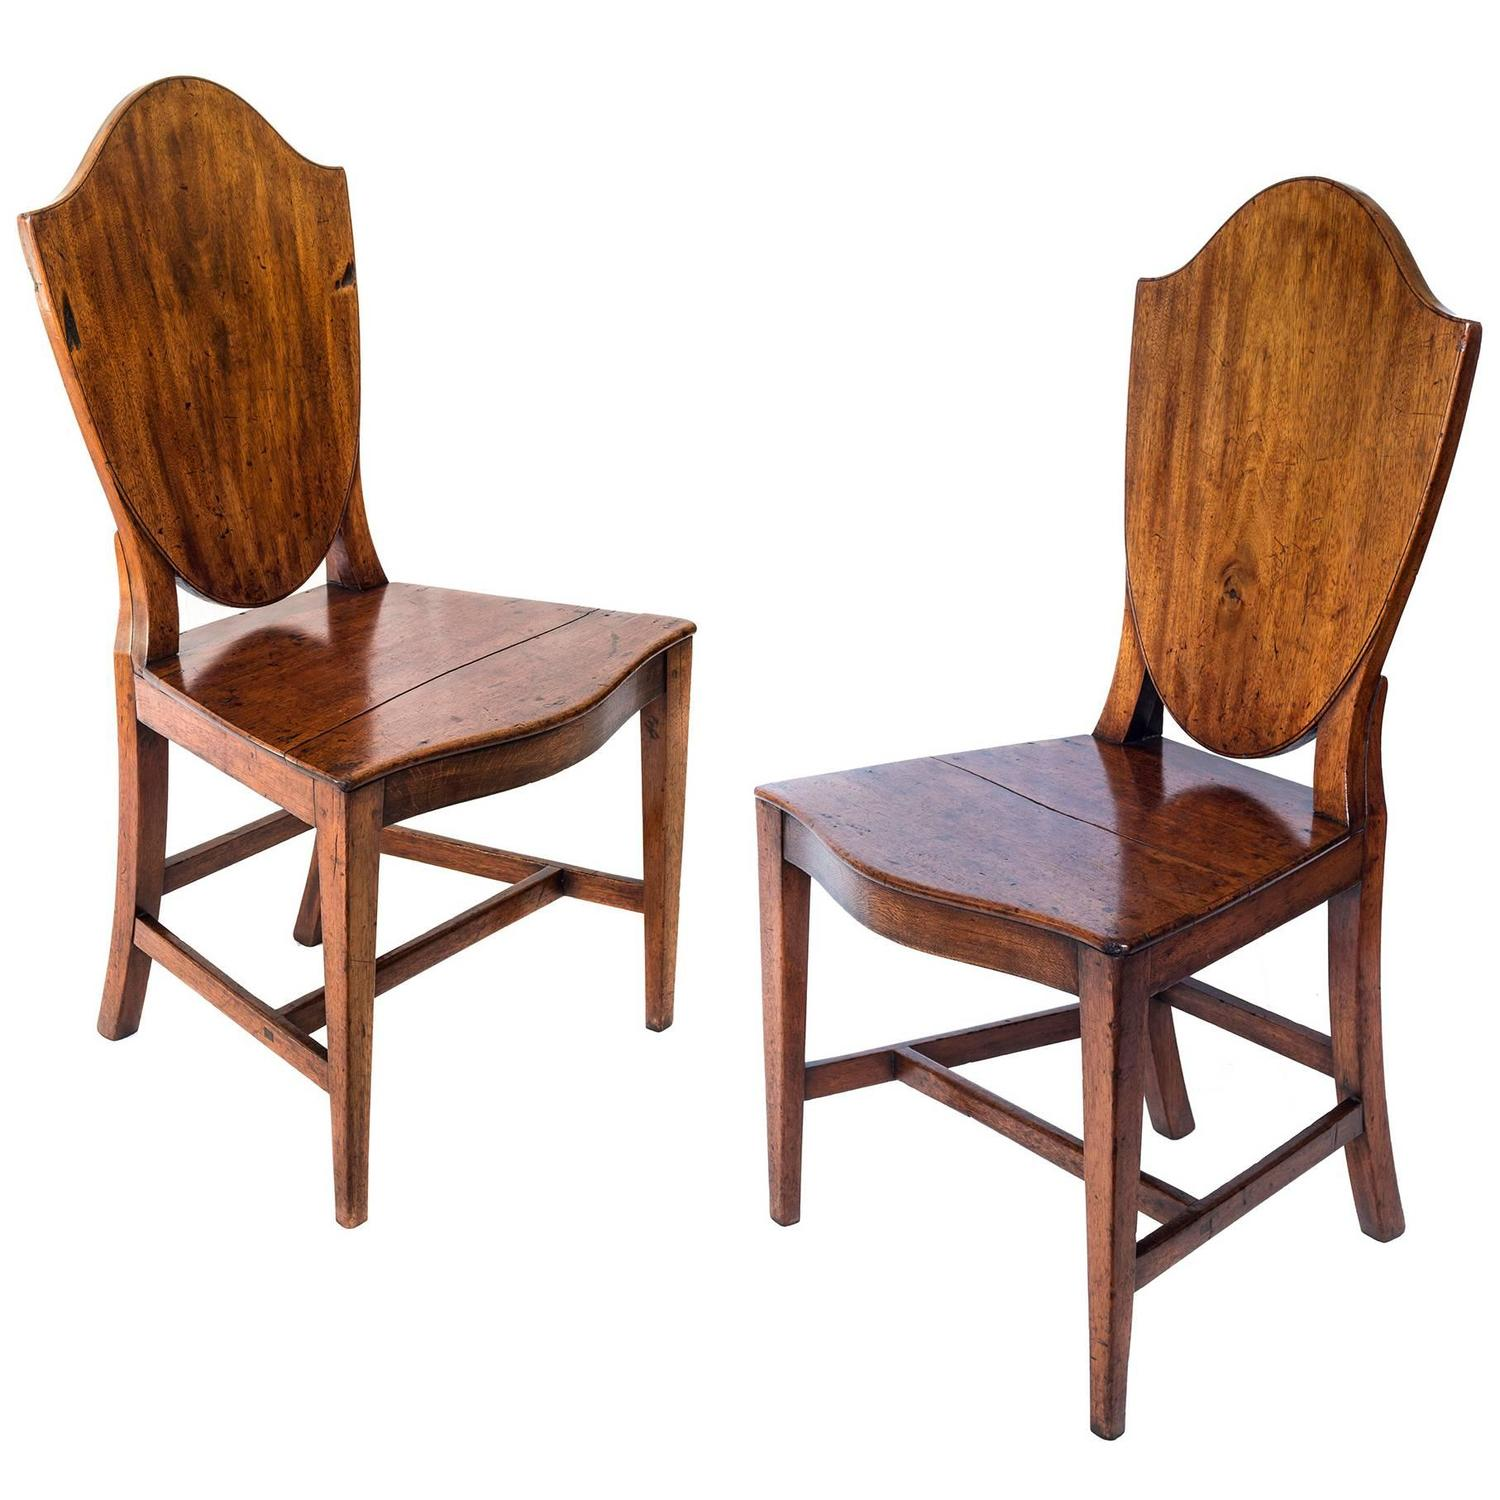 Pair of Antique 18th Century English Georgian Mahogany Country